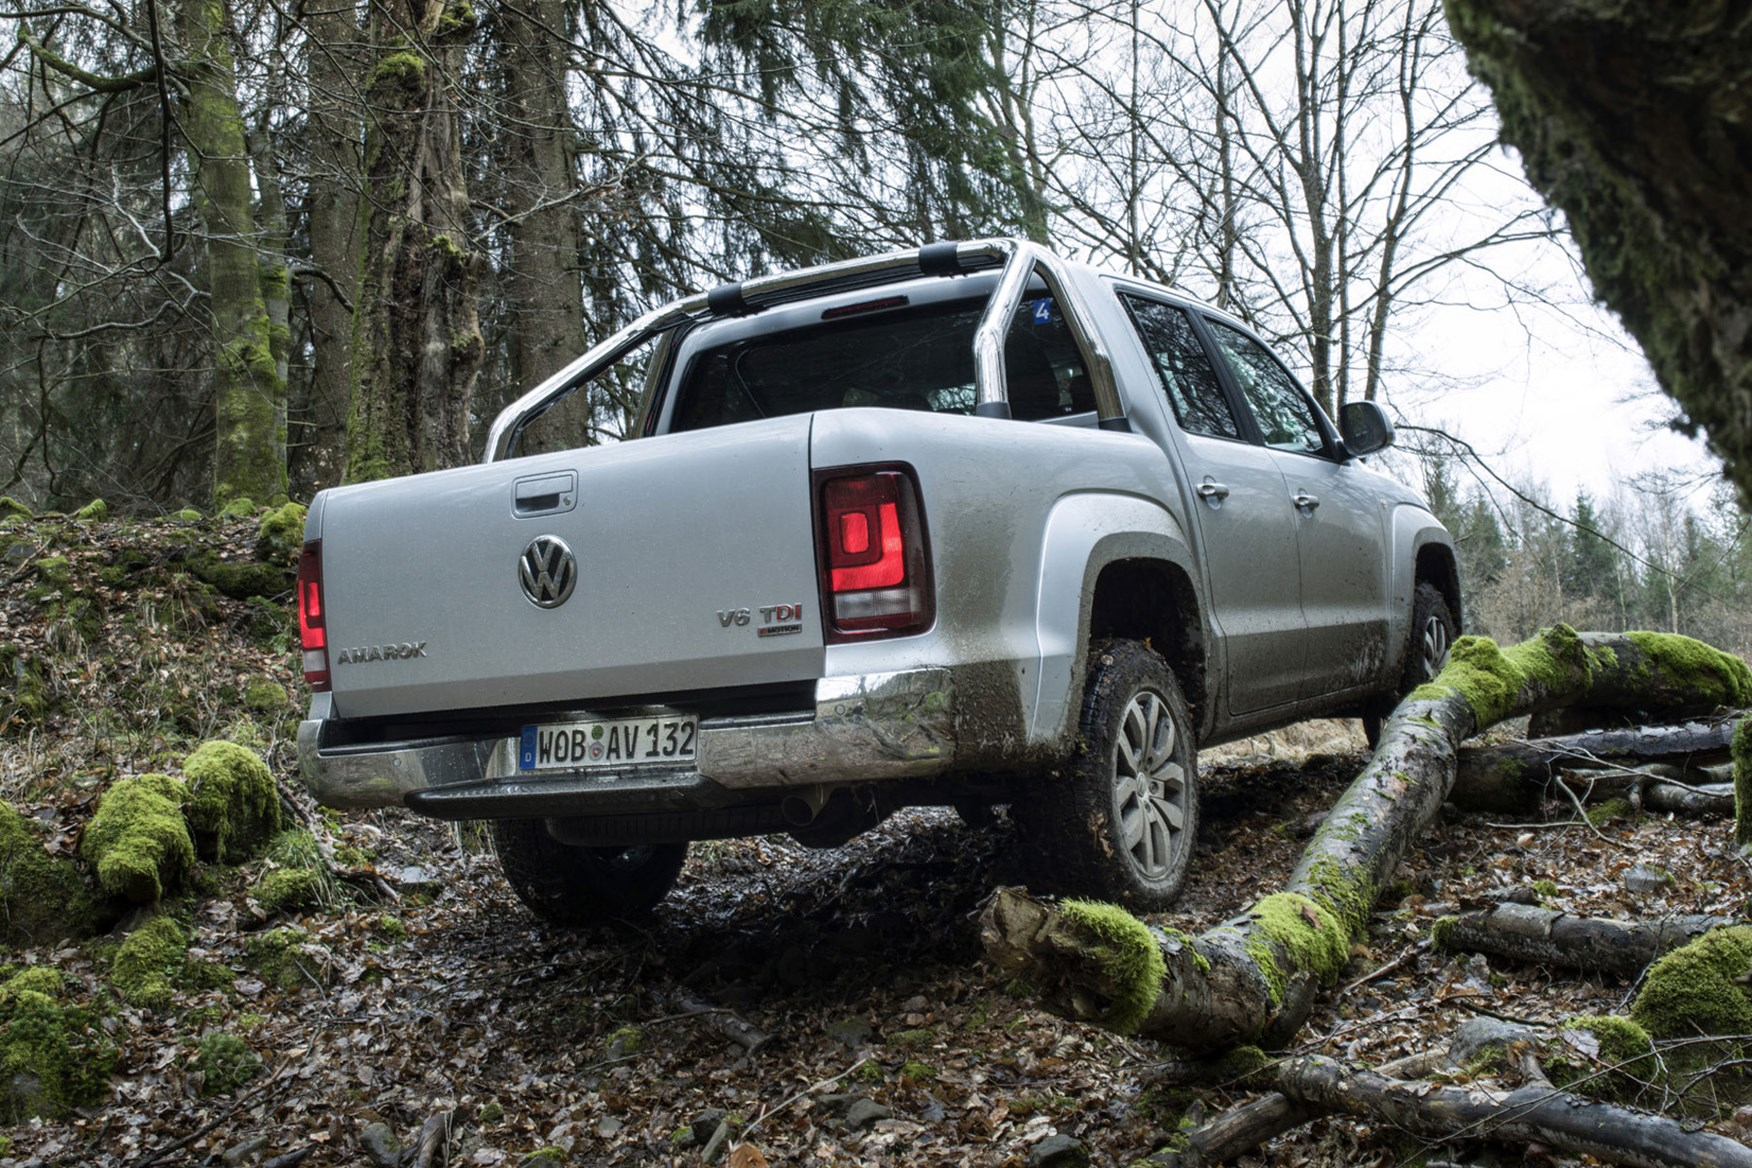 VW Amarok V6 Trendline 204hp review - rear view, off-road, silver